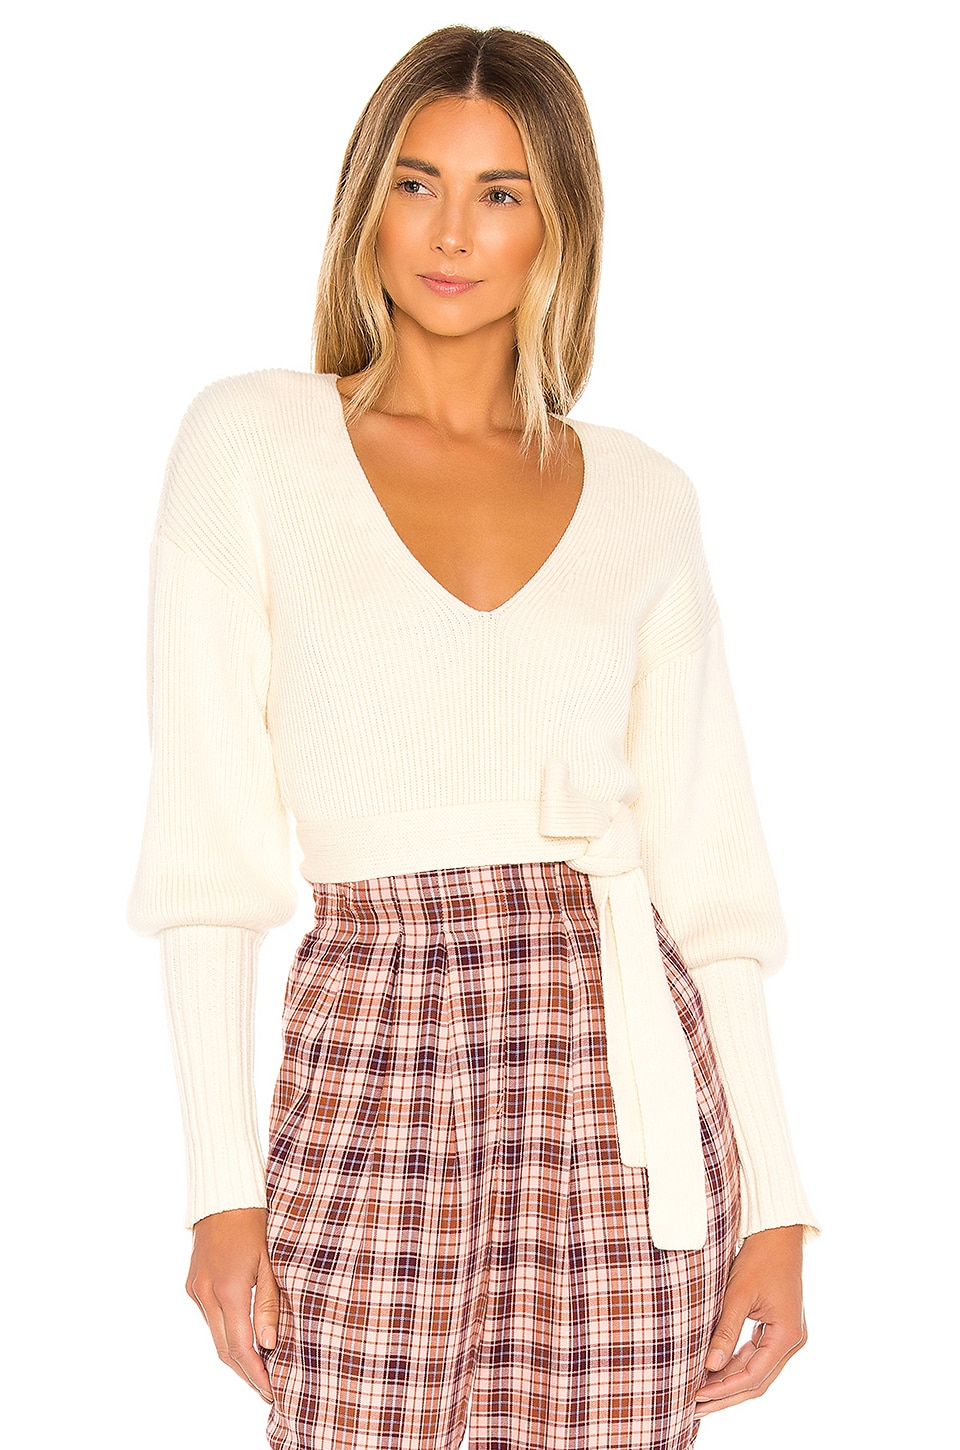 MAJORELLE Shiloh Sweater in Ivory